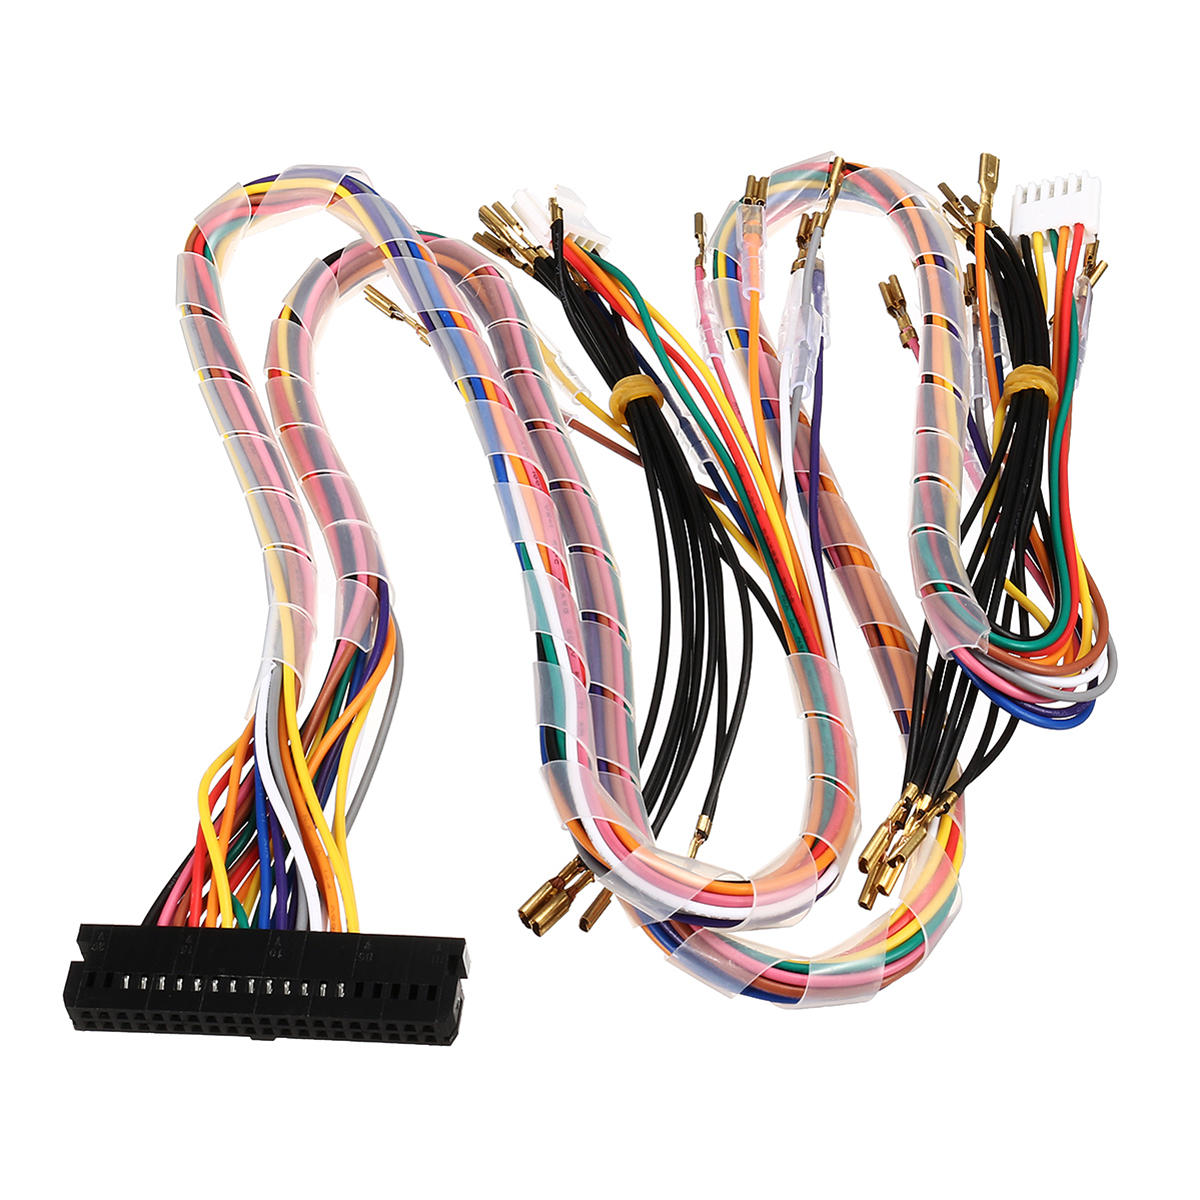 Awe Inspiring Wiring Harness Cable Replacement Parts Assemble For Arcade Jamma Wiring 101 Ferenstreekradiomeanderfmnl